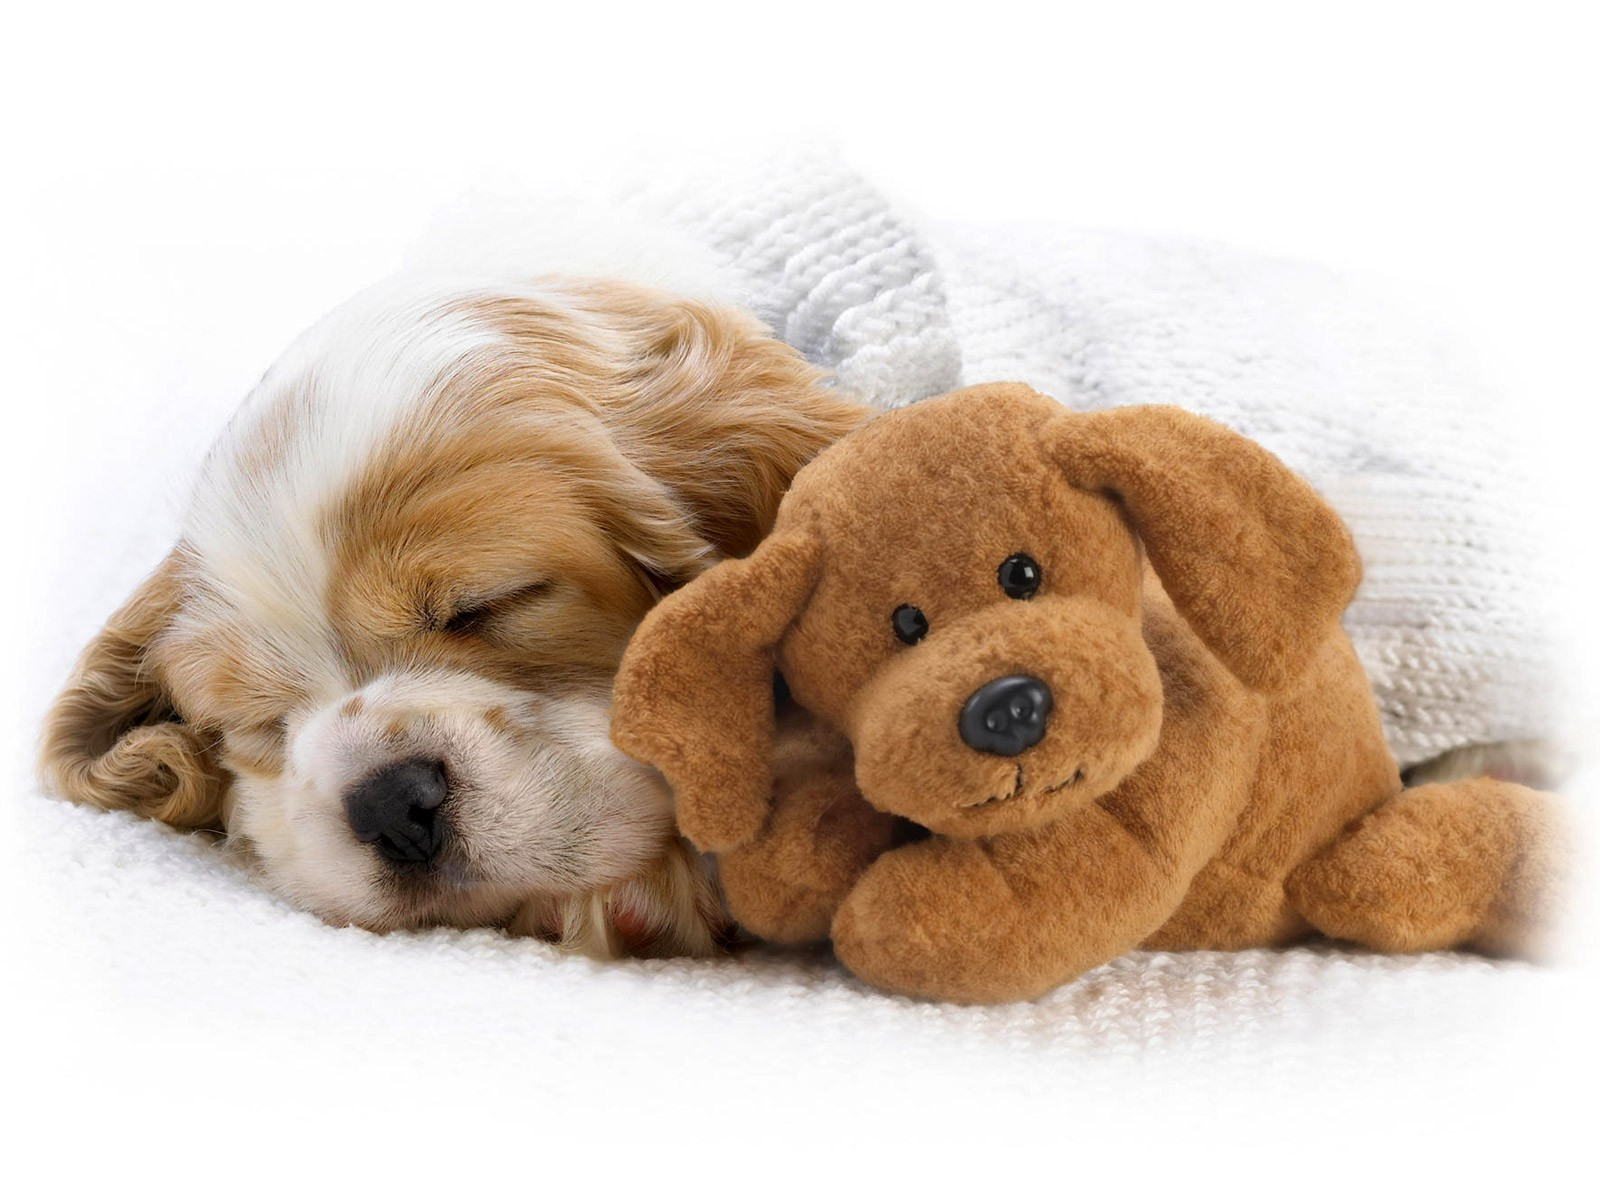 Wallpapers and pictures of cute puppies | Nice Wallpapers ...